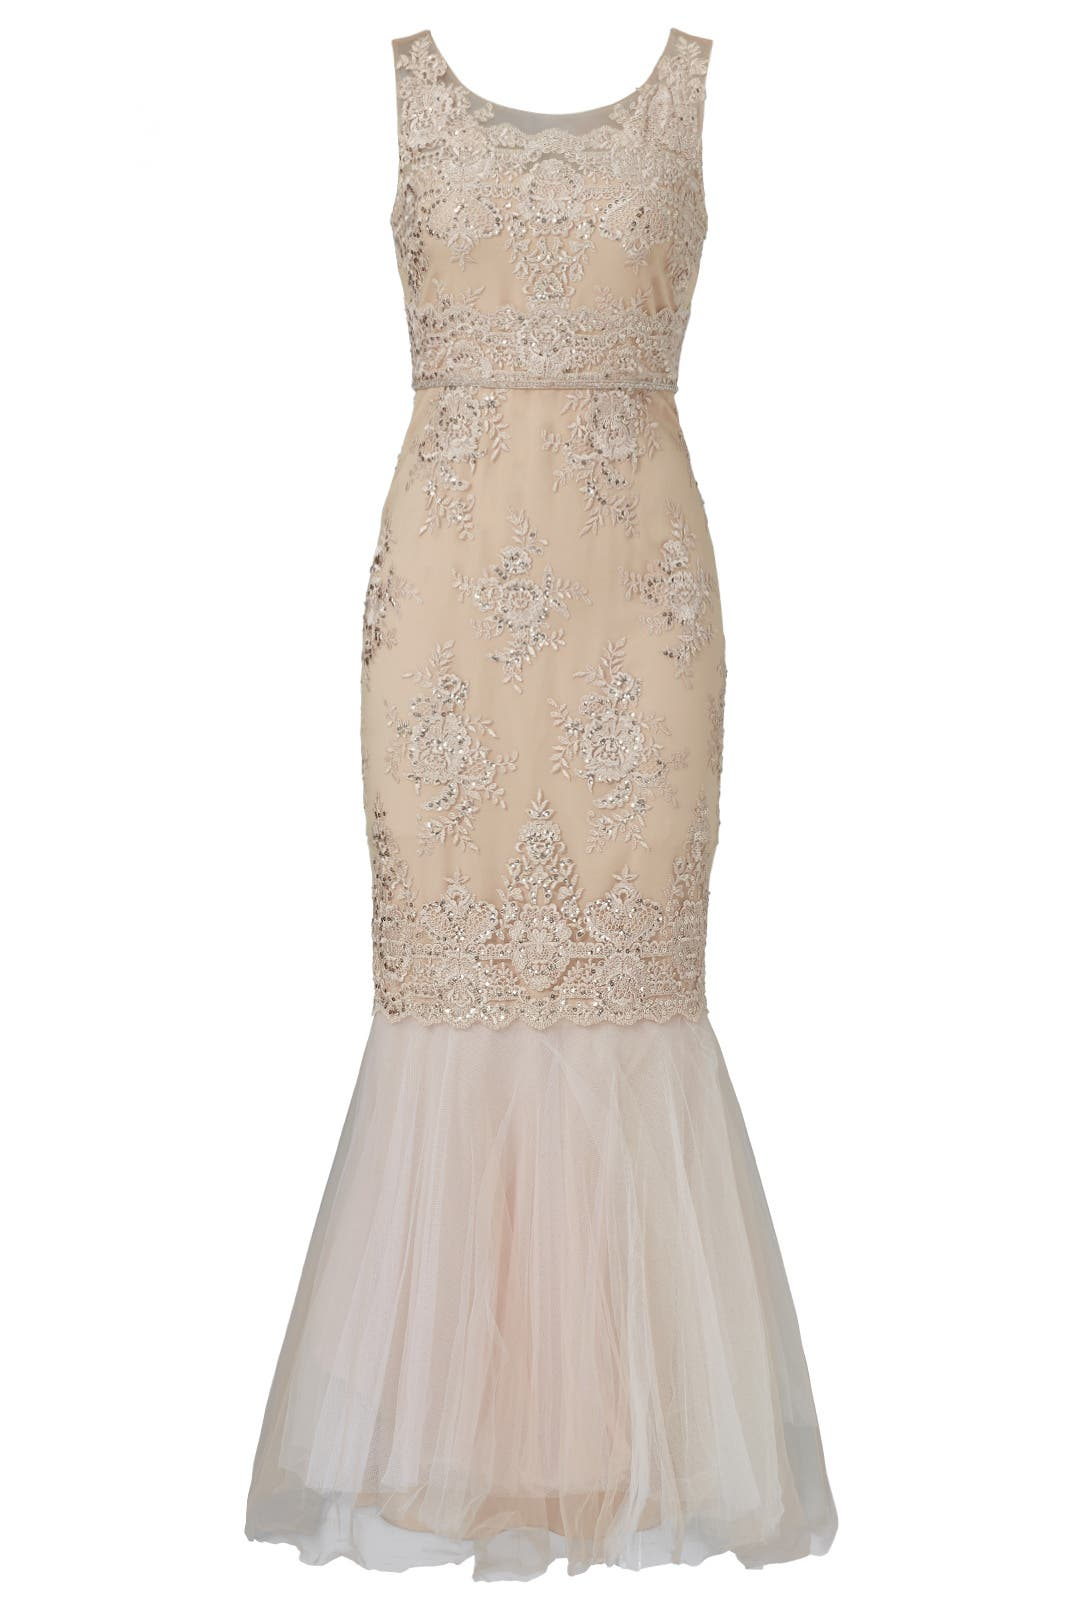 Dresses marchesa notte great selection and prices for for Marchesa wedding dresses prices